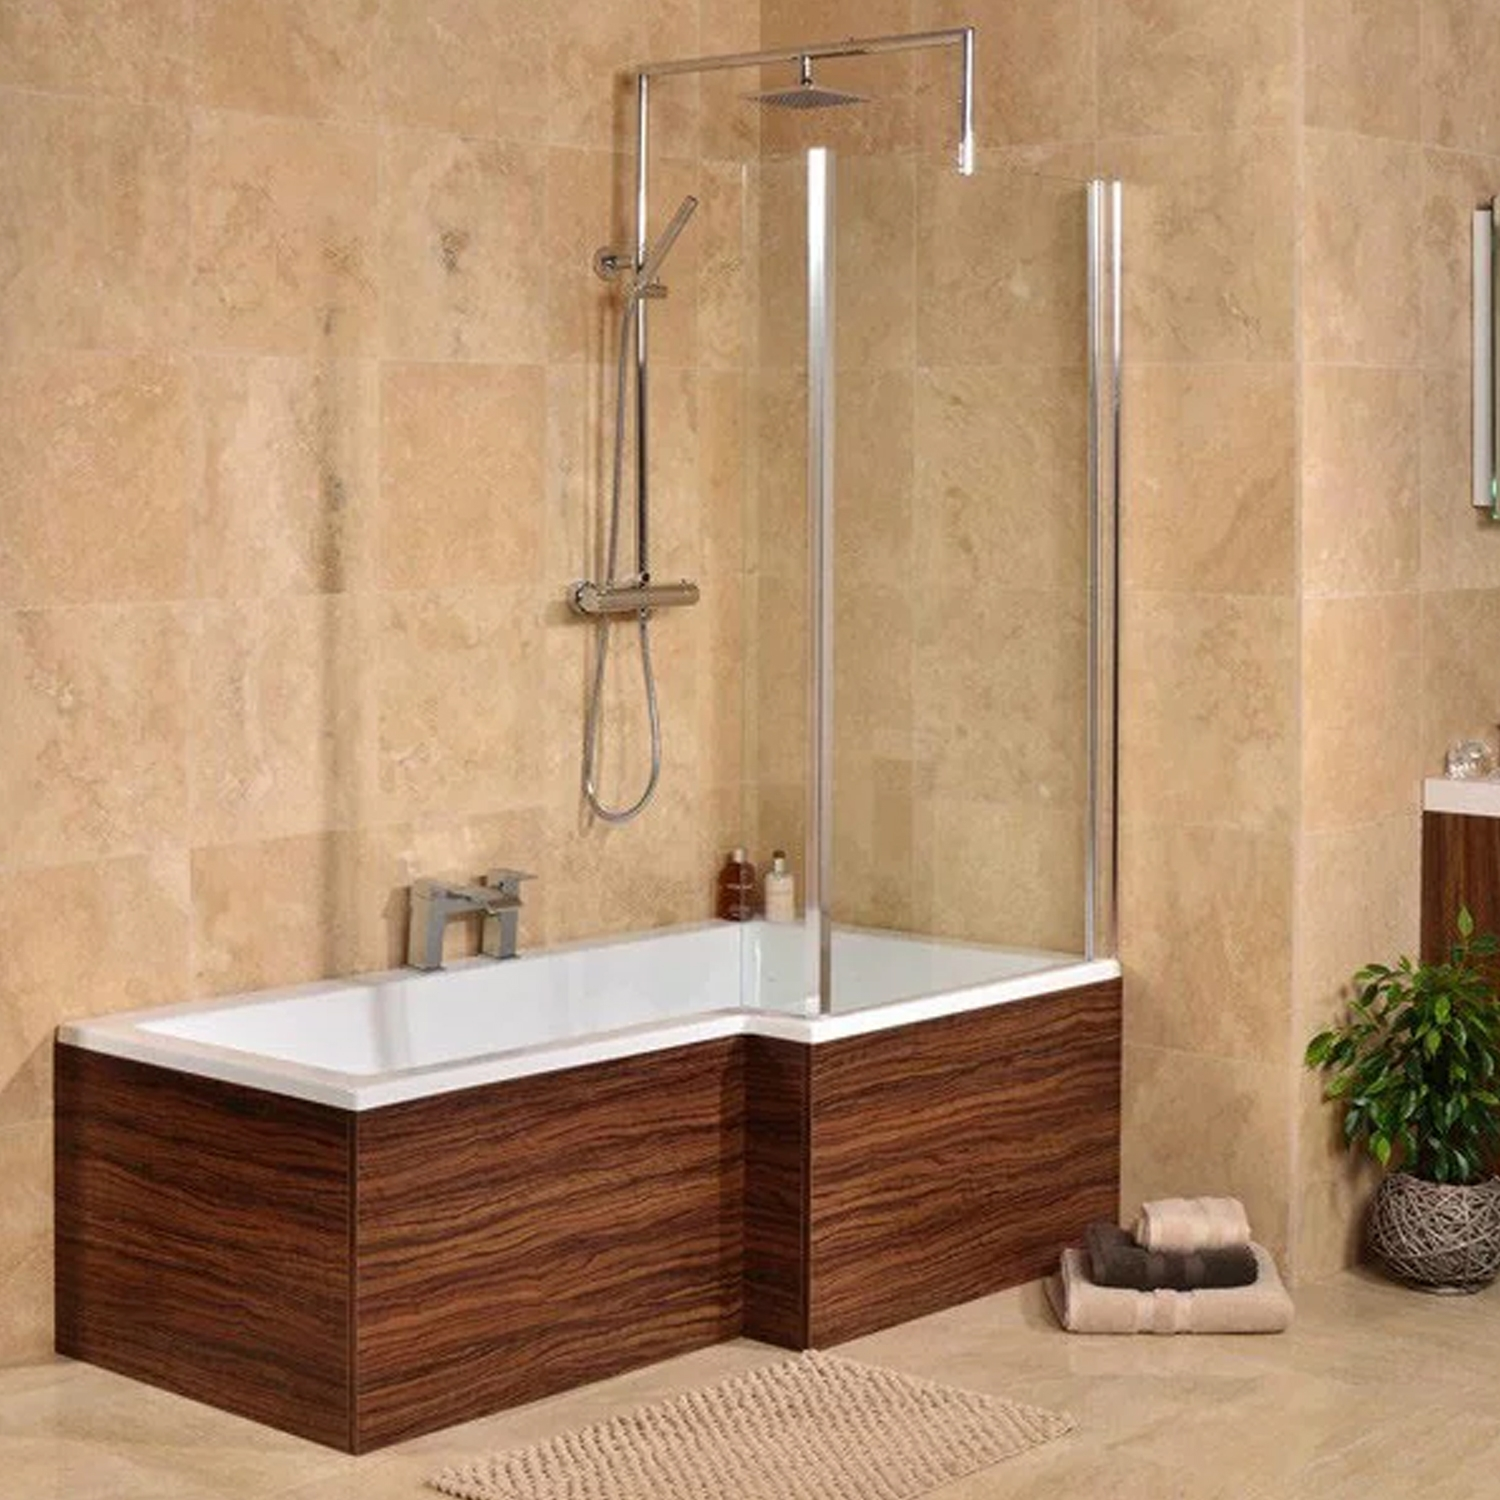 Premier Square L-Shaped Shower Bath 1700mm x 700mm/850mm Right Handed